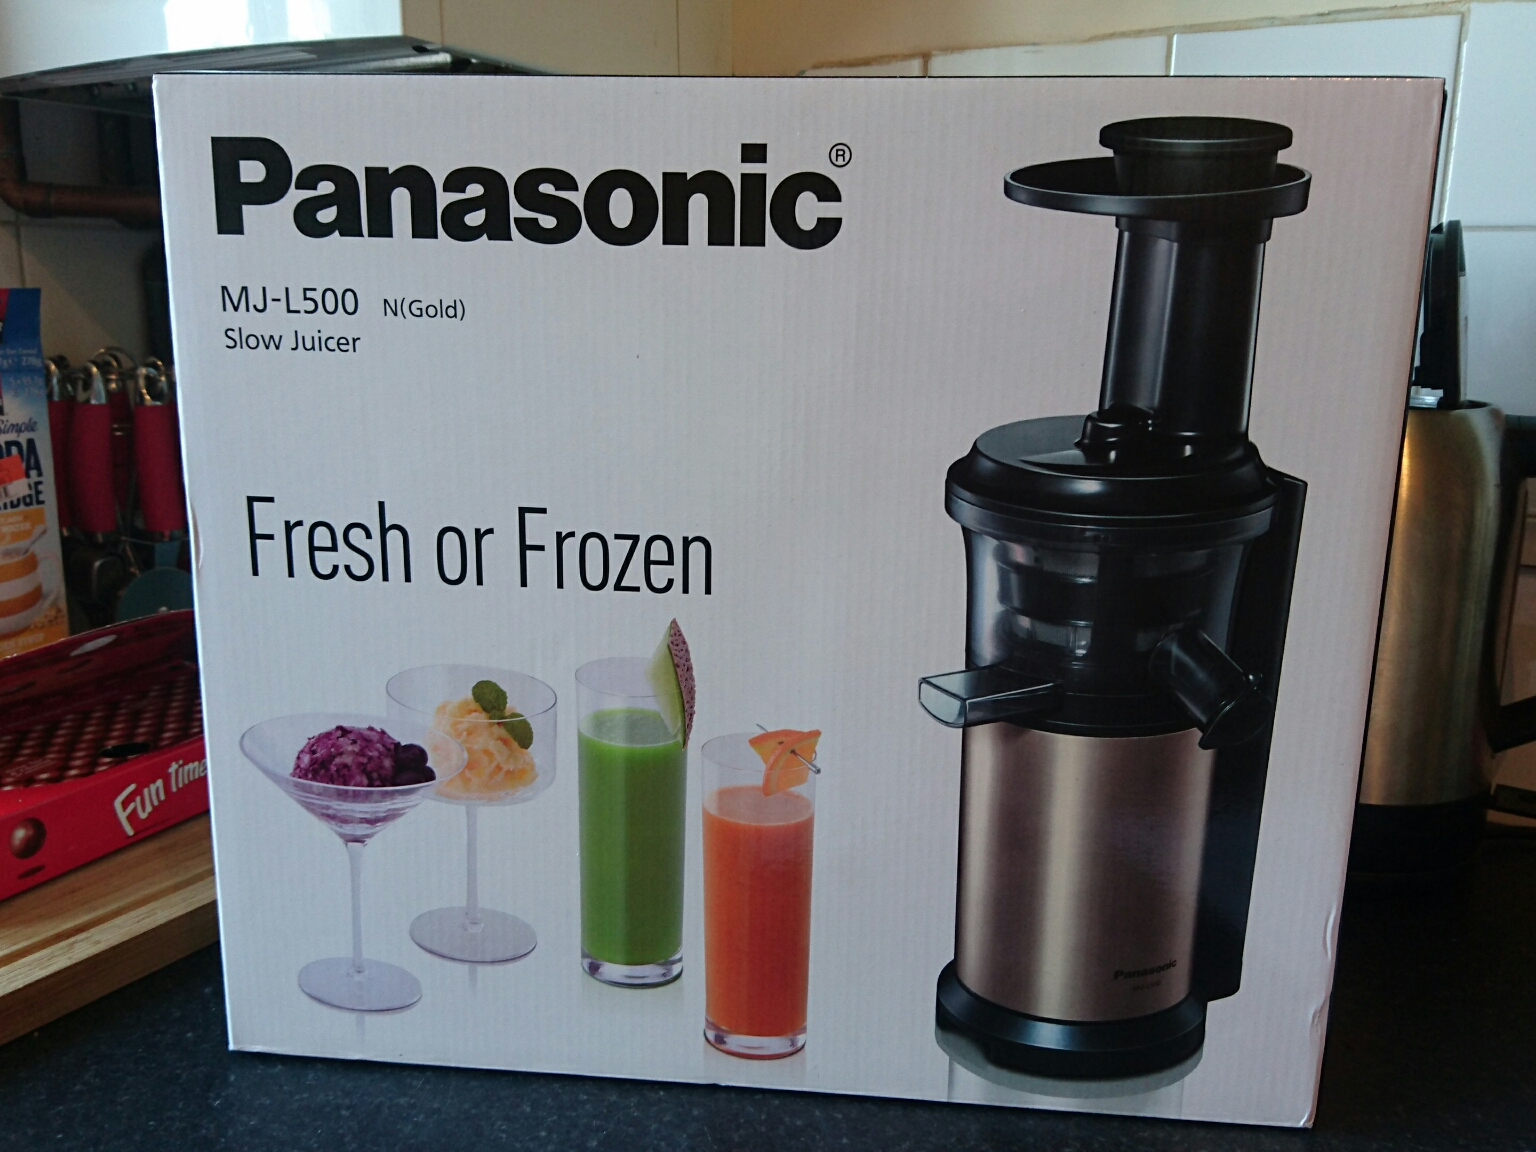 Panasonic Mj L500 Slow Juicer Reviews : United Cakedom: Panasonic Slow Juicer: MJ-L500 Review